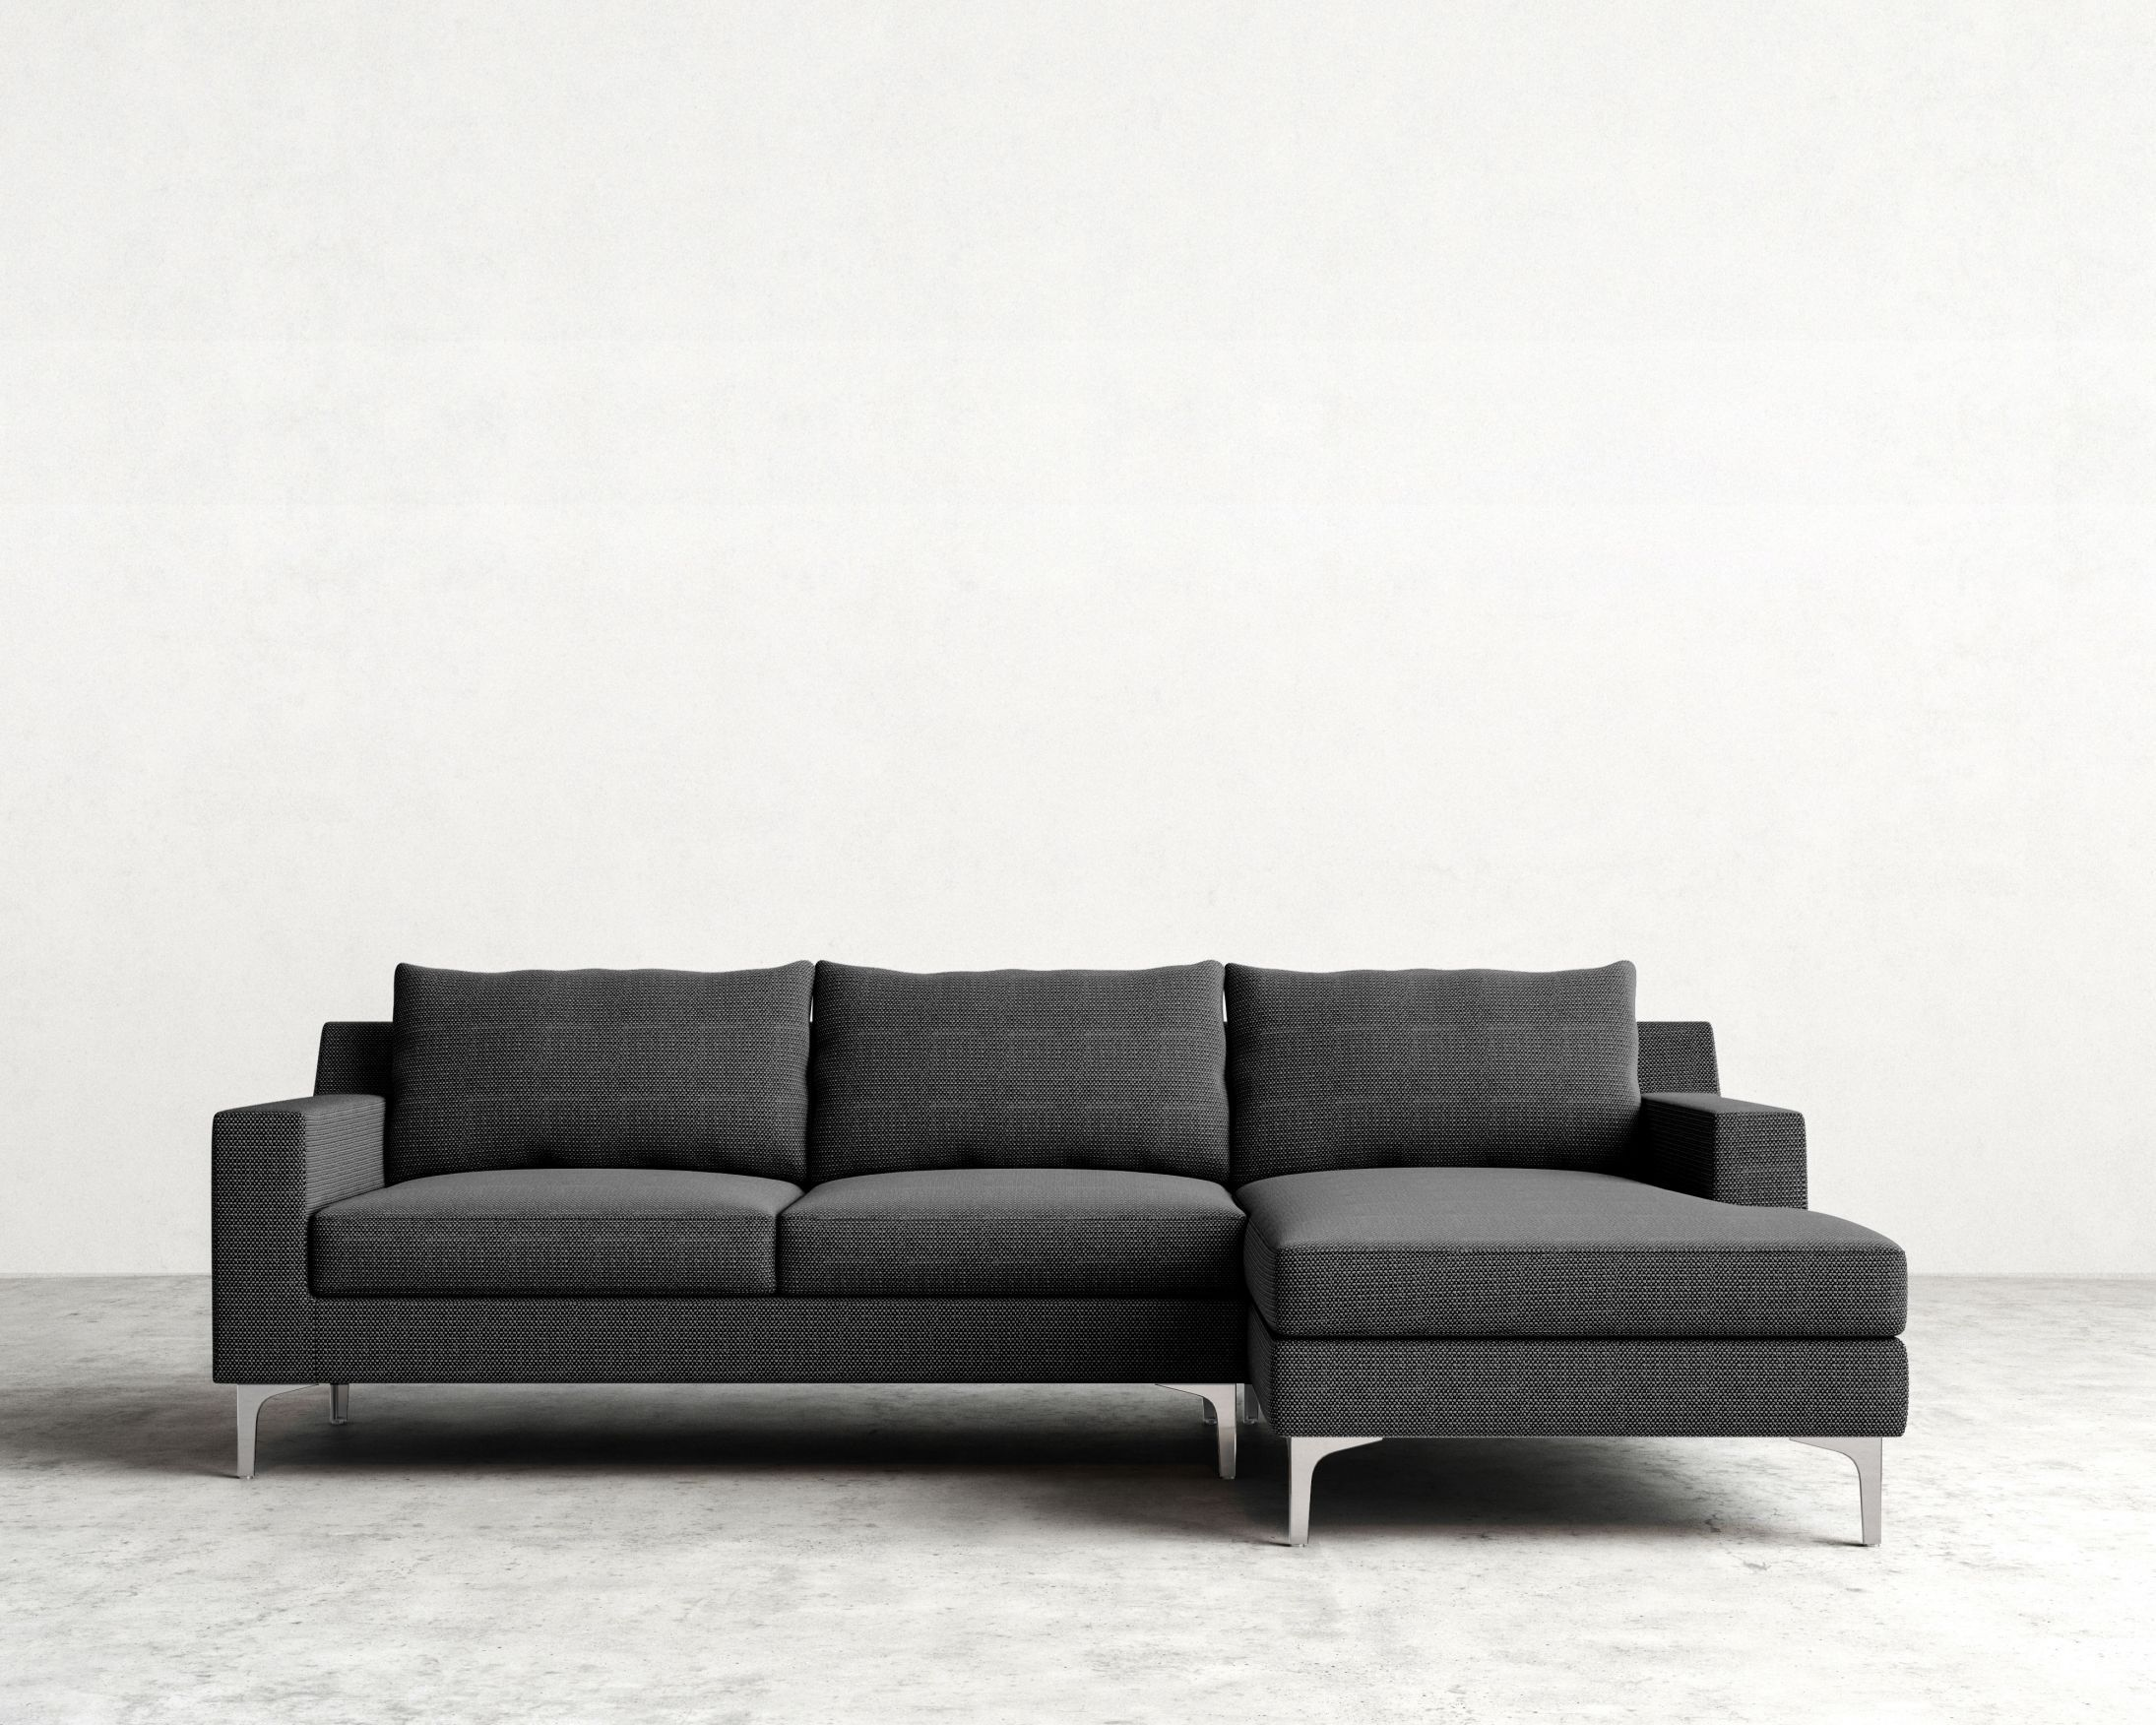 Sophia Sofa Sectional Modern Sofa Sectional Rove Concepts